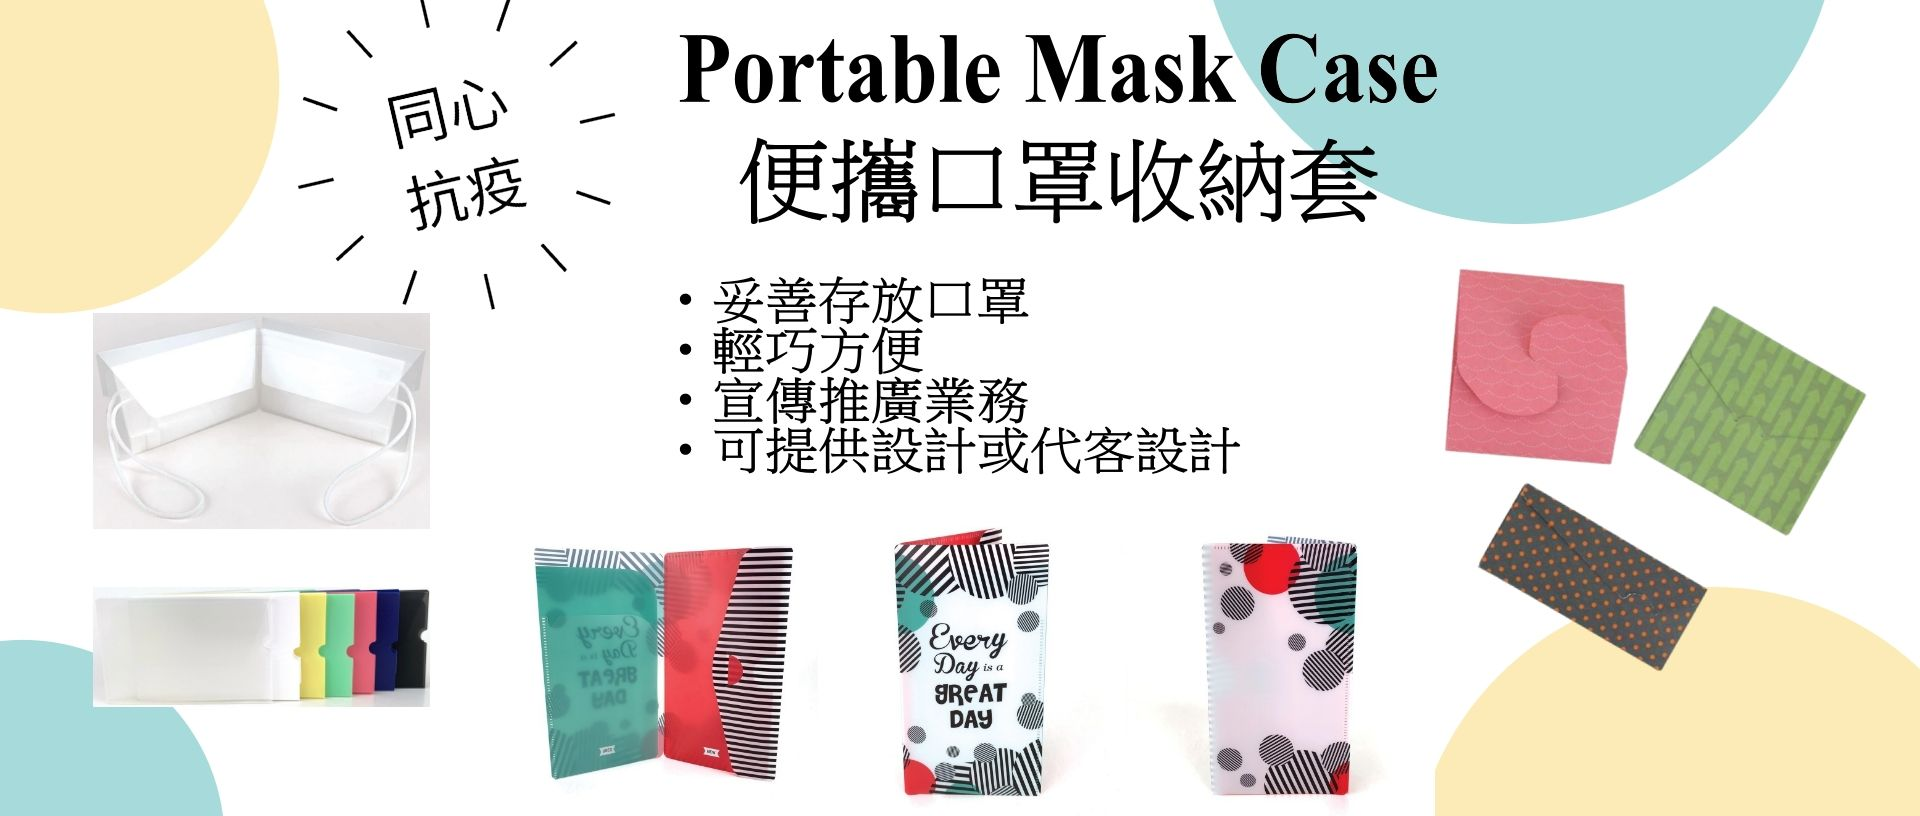 Welcome OEM or ODM Orders of Portable Mase Case, Hong Kong Printing Company 便攜口罩收納套 香港印刷公司